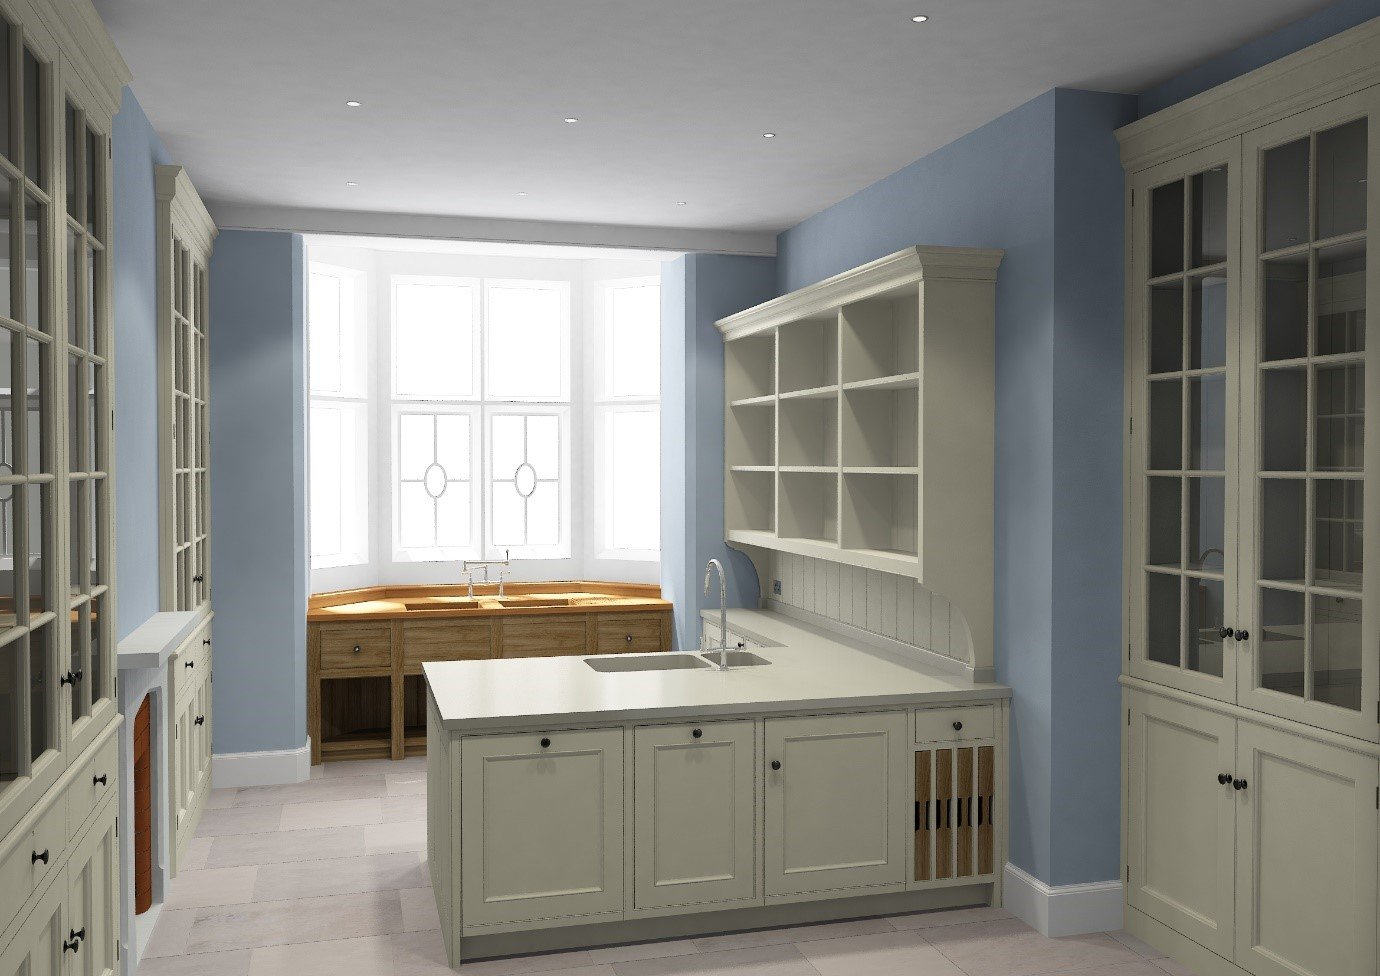 3D render of Artichoke designed butler's pantry